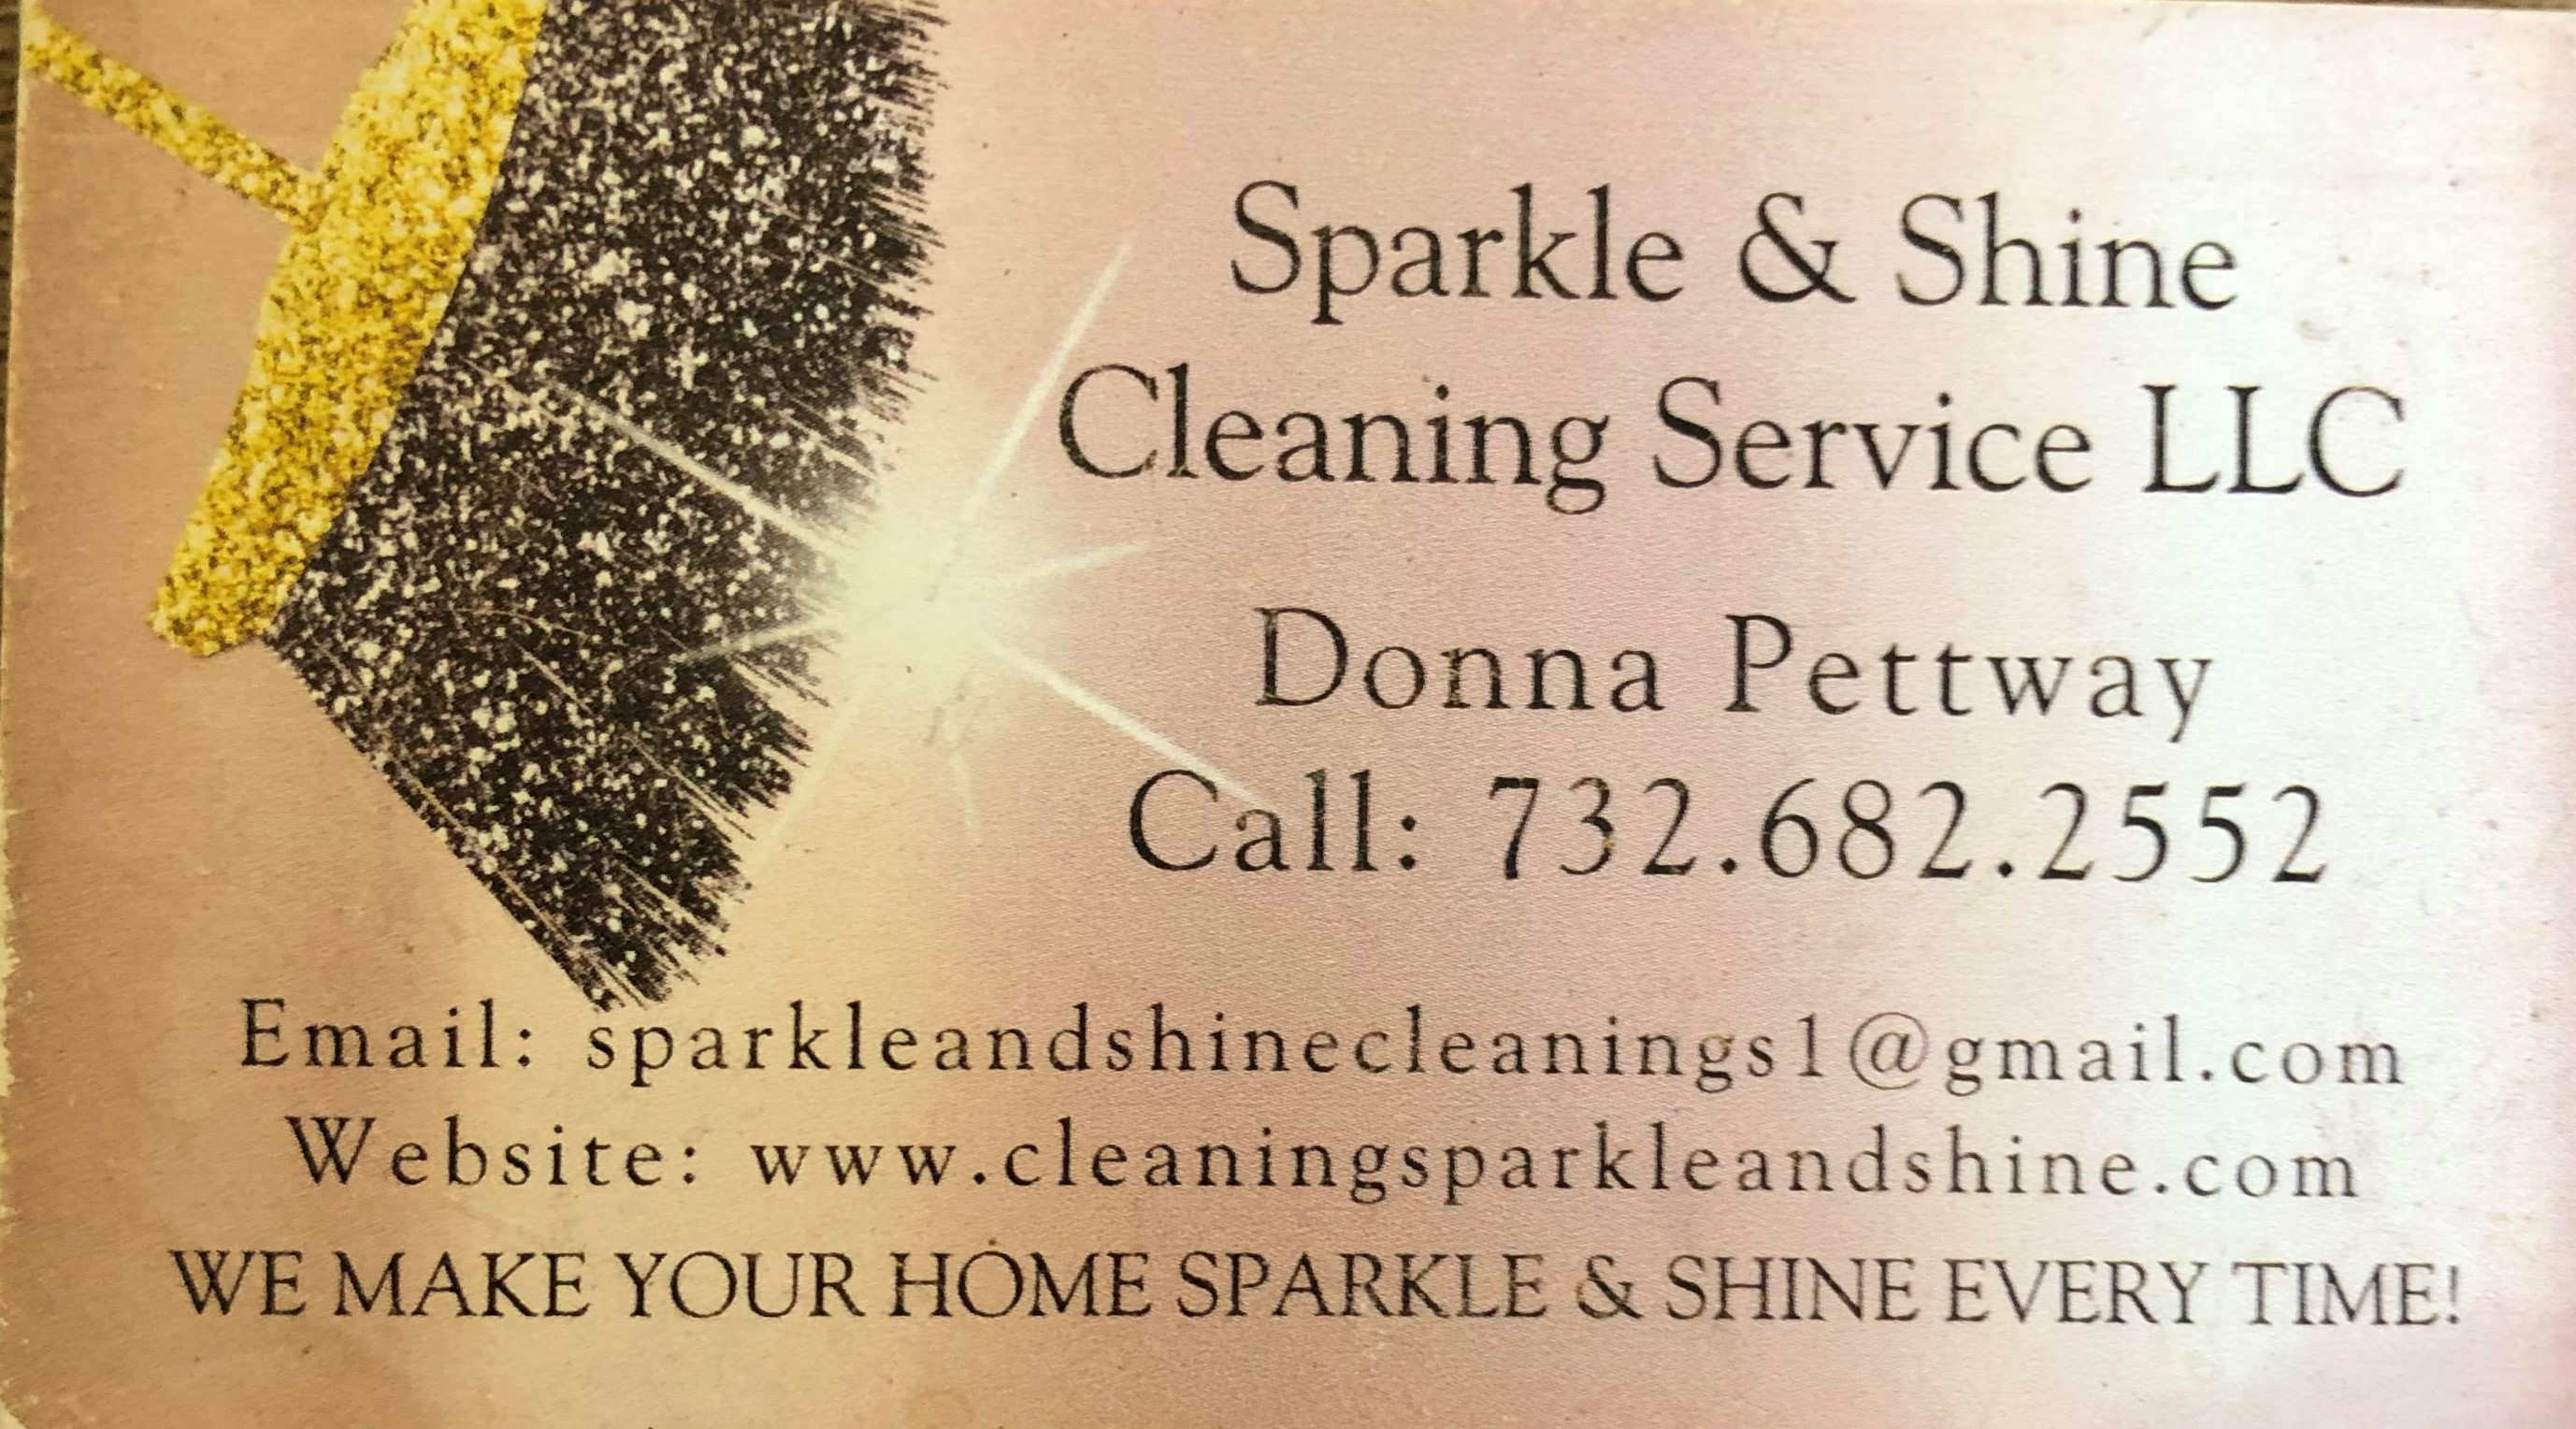 Sparkle & Shine Cleaning Service LLC